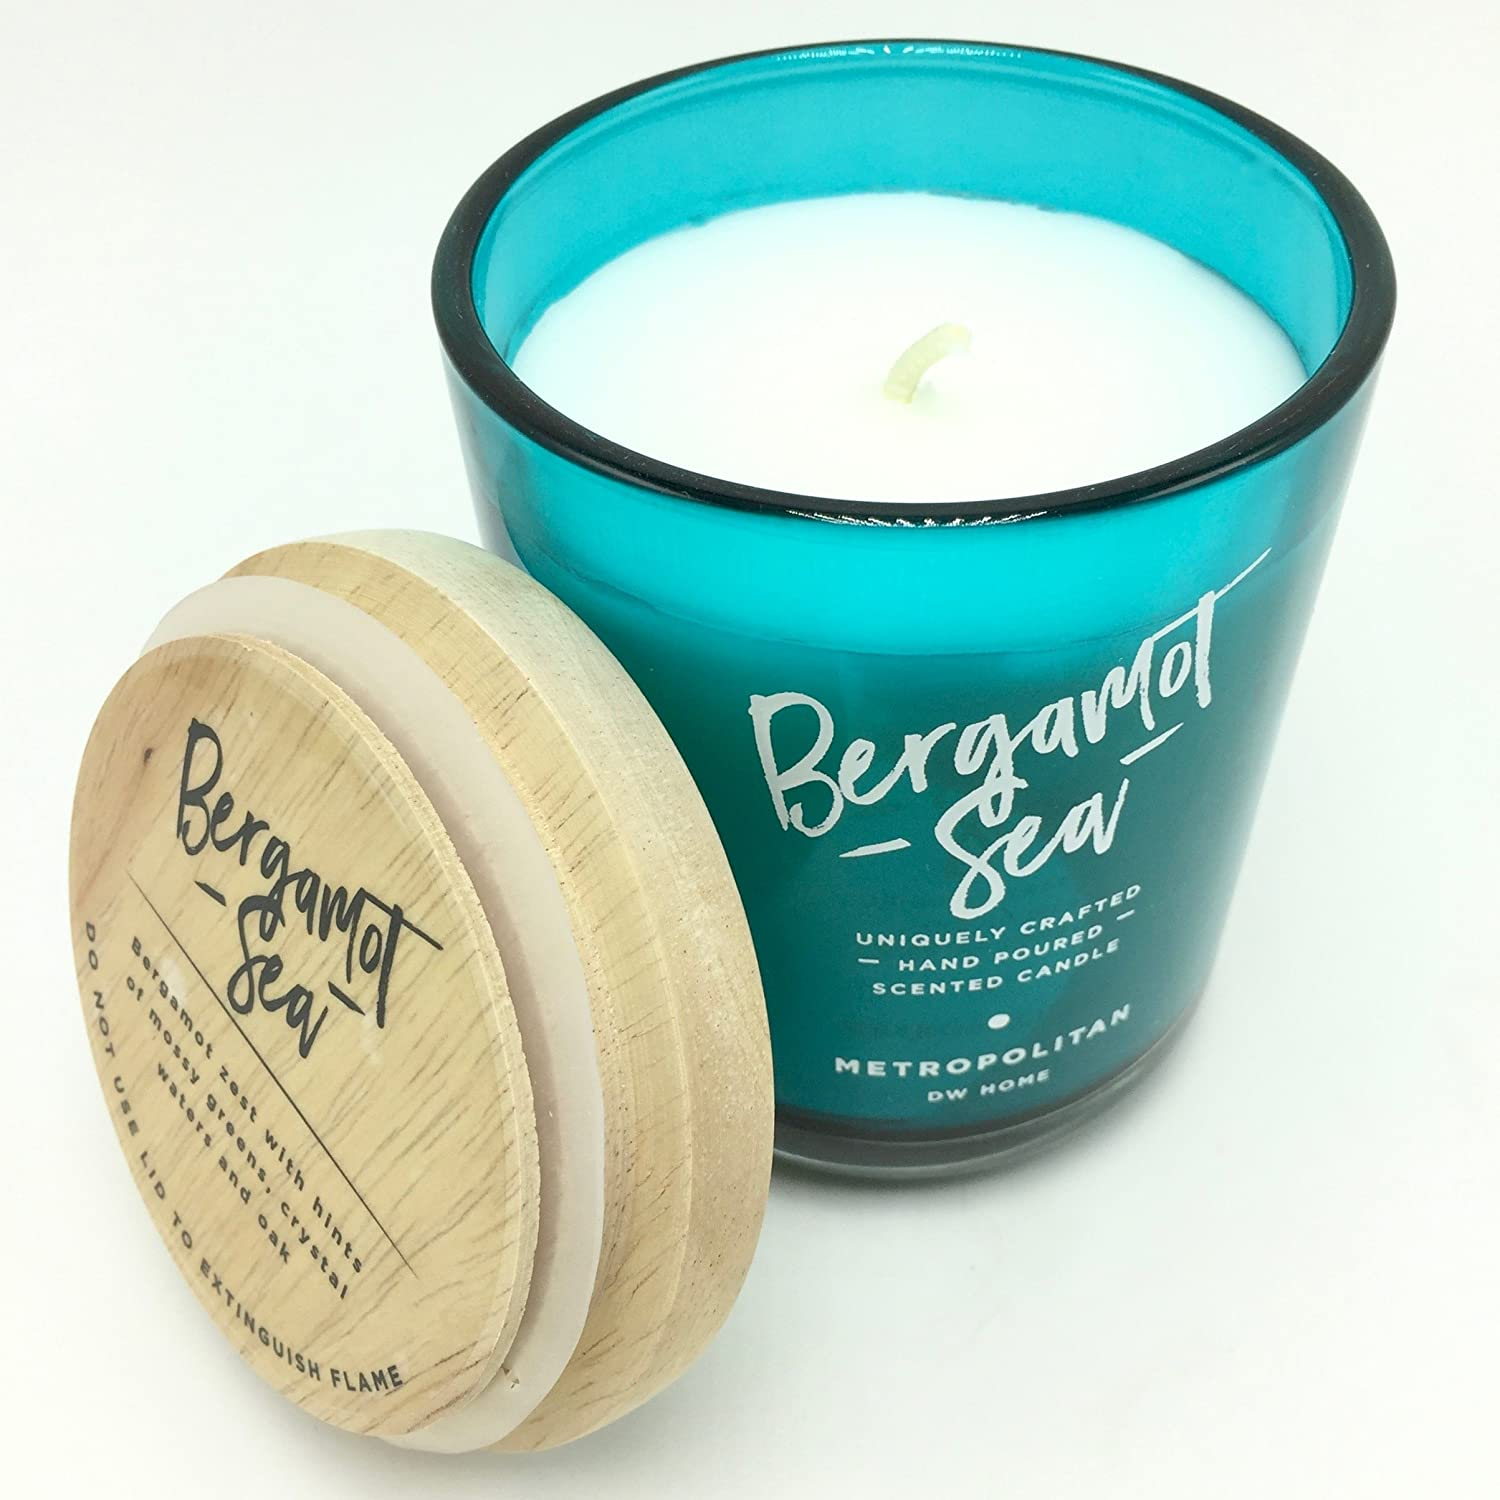 DW Home Metropolitan Collection Bergamot Sea Scented Candle